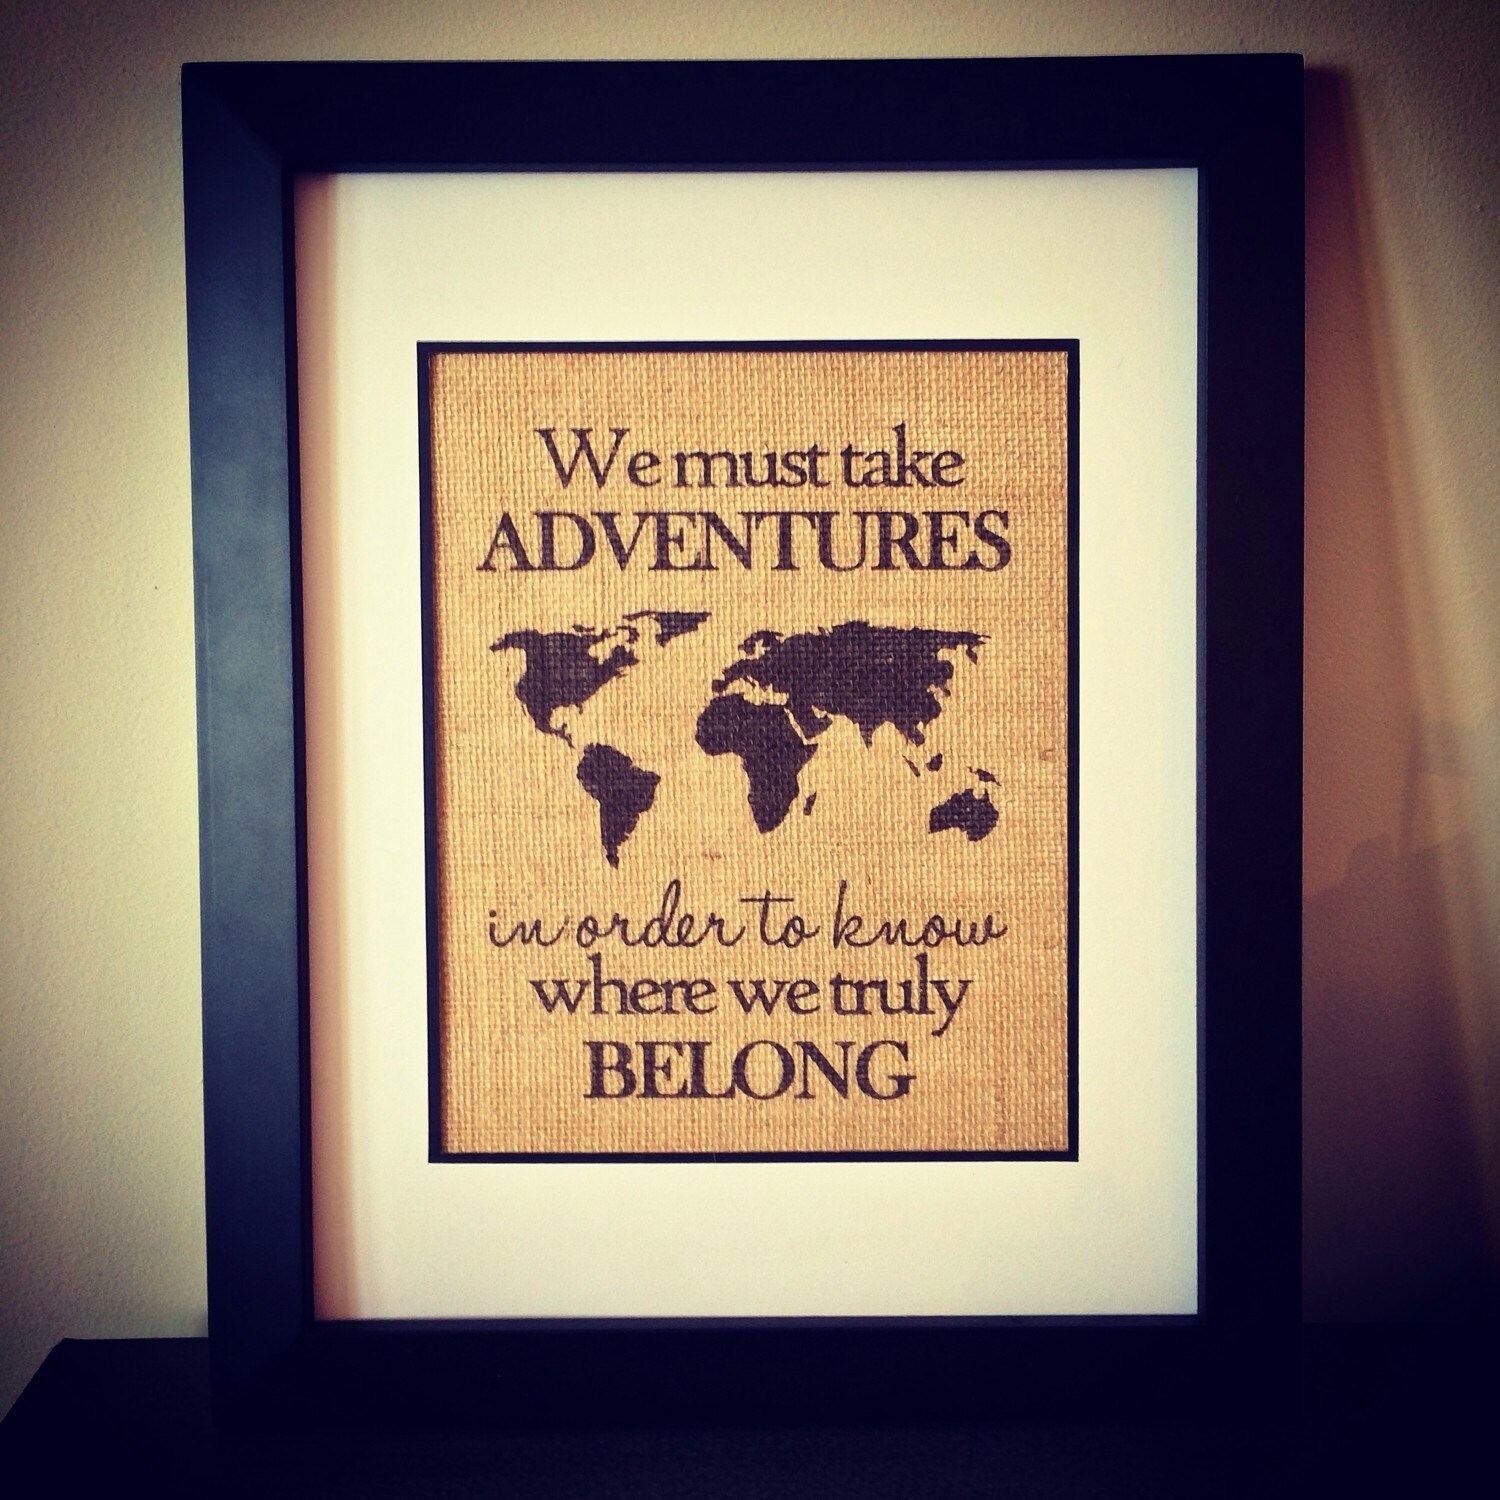 We must take adventures in order know where we truly belong.